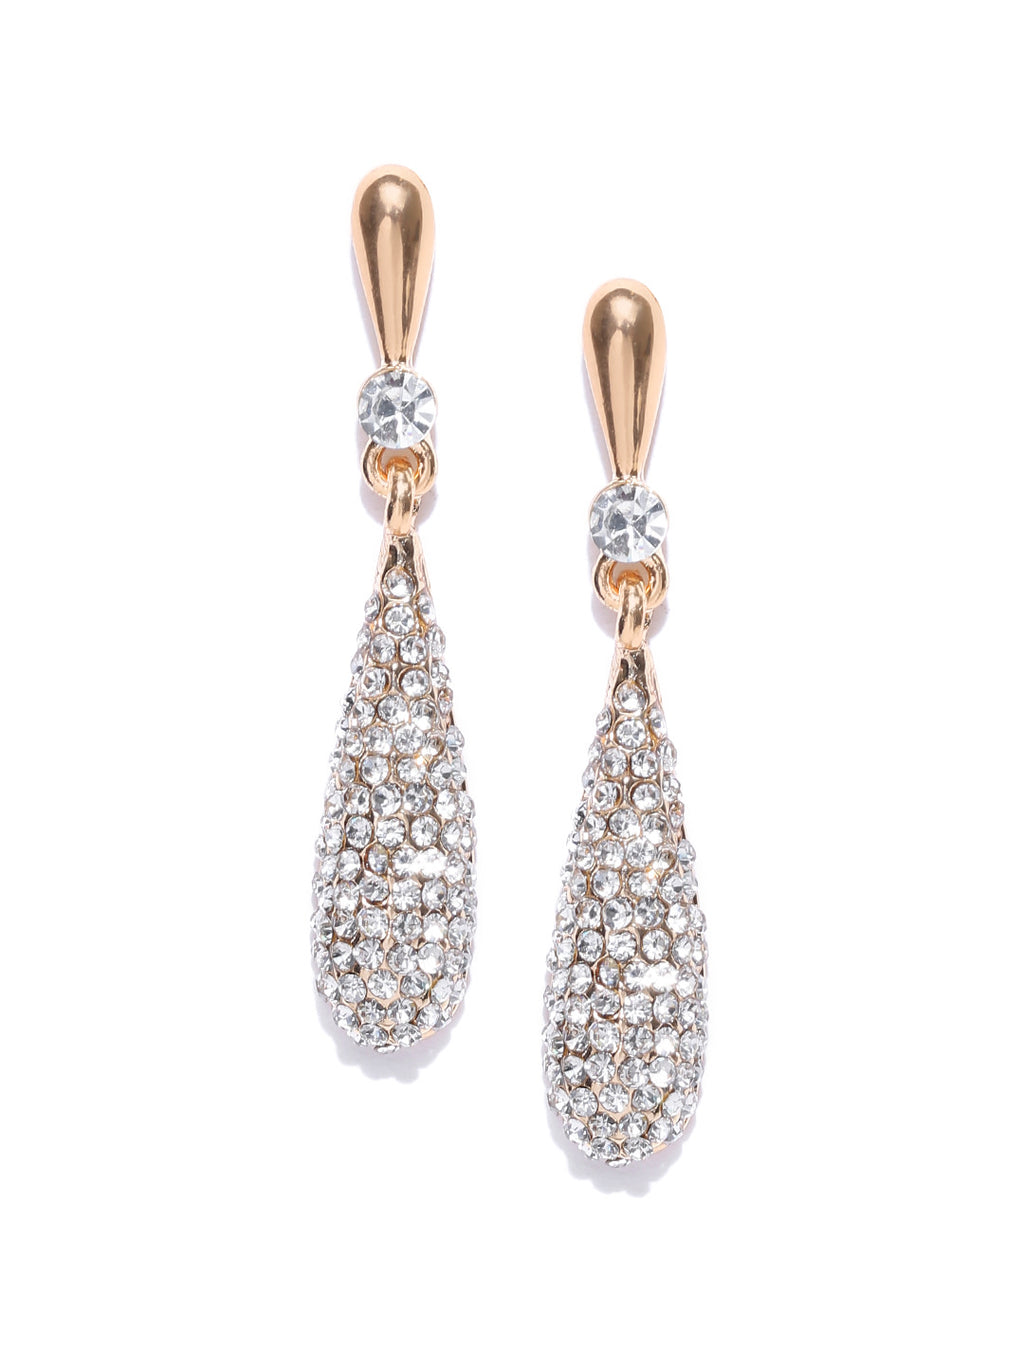 TEARDROP STUDDED DROP EARRINGS - chique boutique